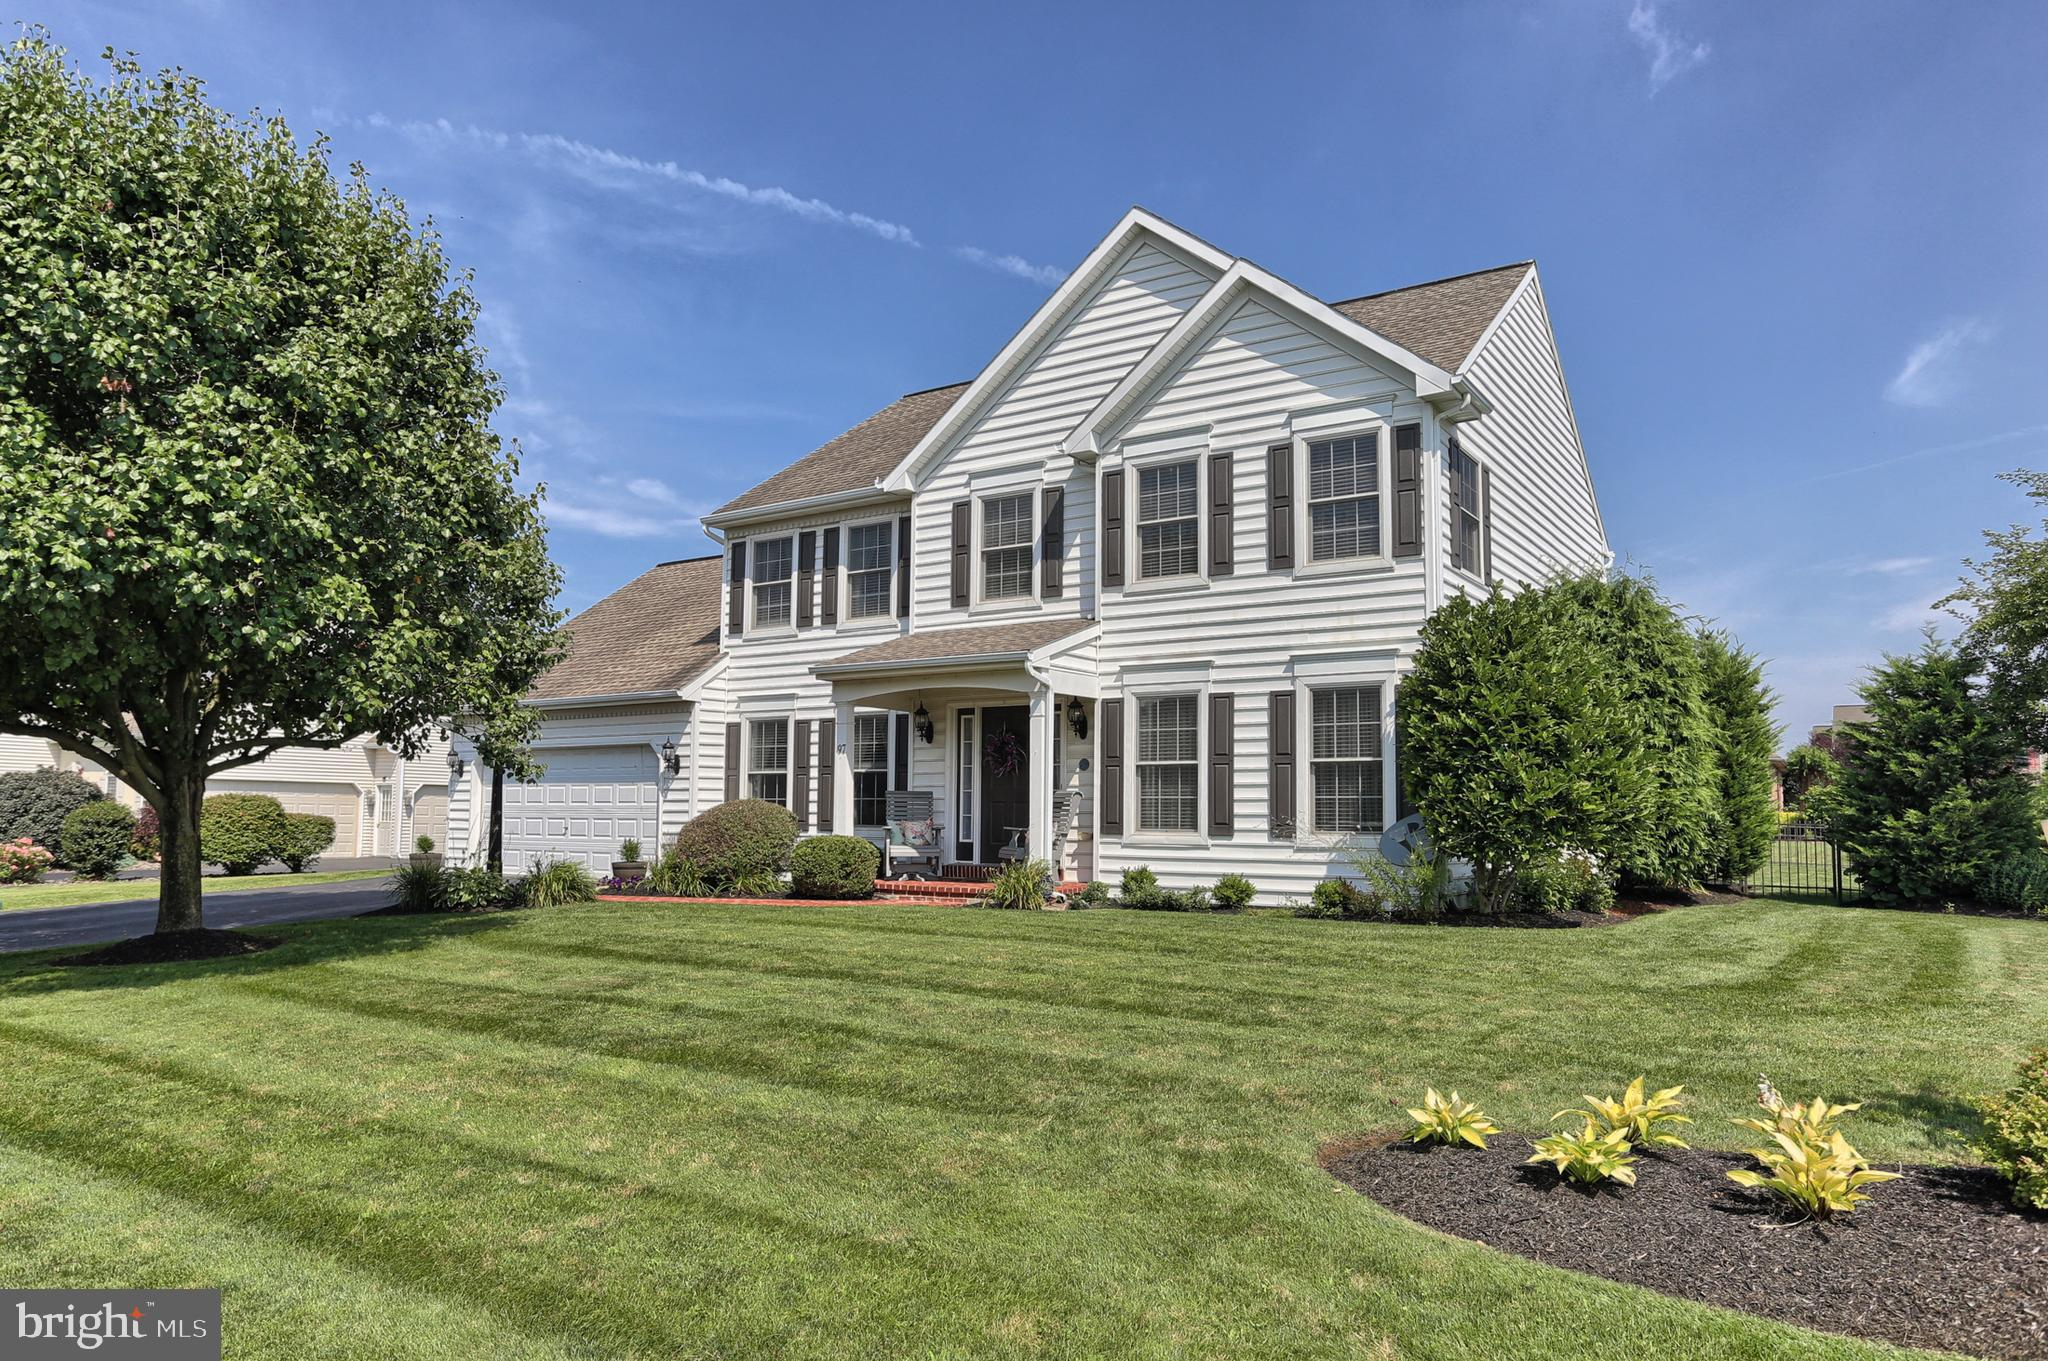 97 LEXINGTON DRIVE, ANNVILLE, PA 17003